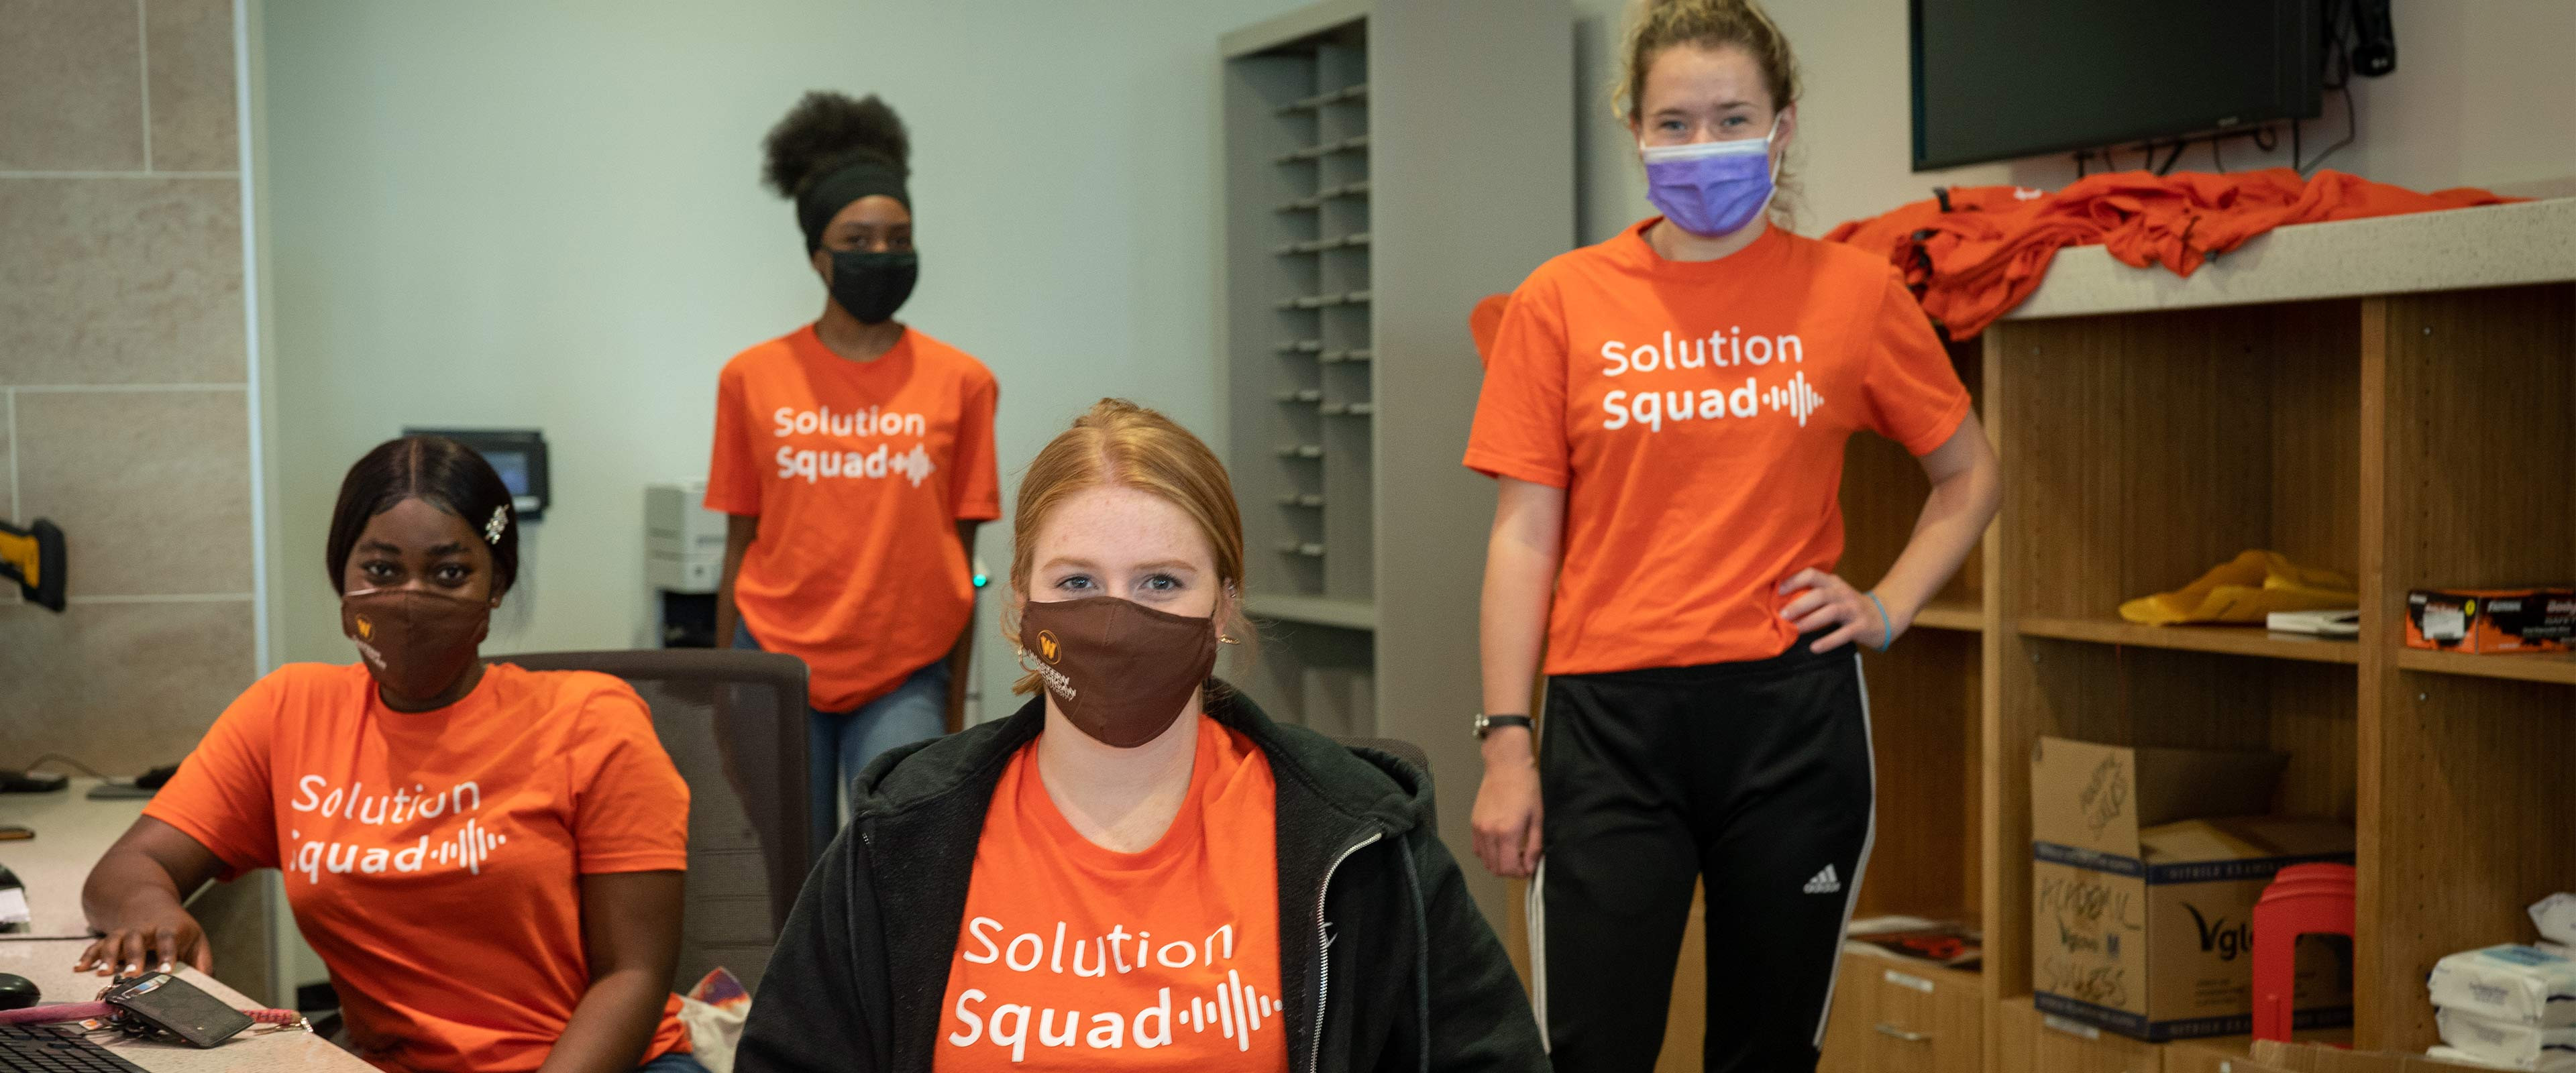 A group of students wearing masks and Solution Squad T-shirts.